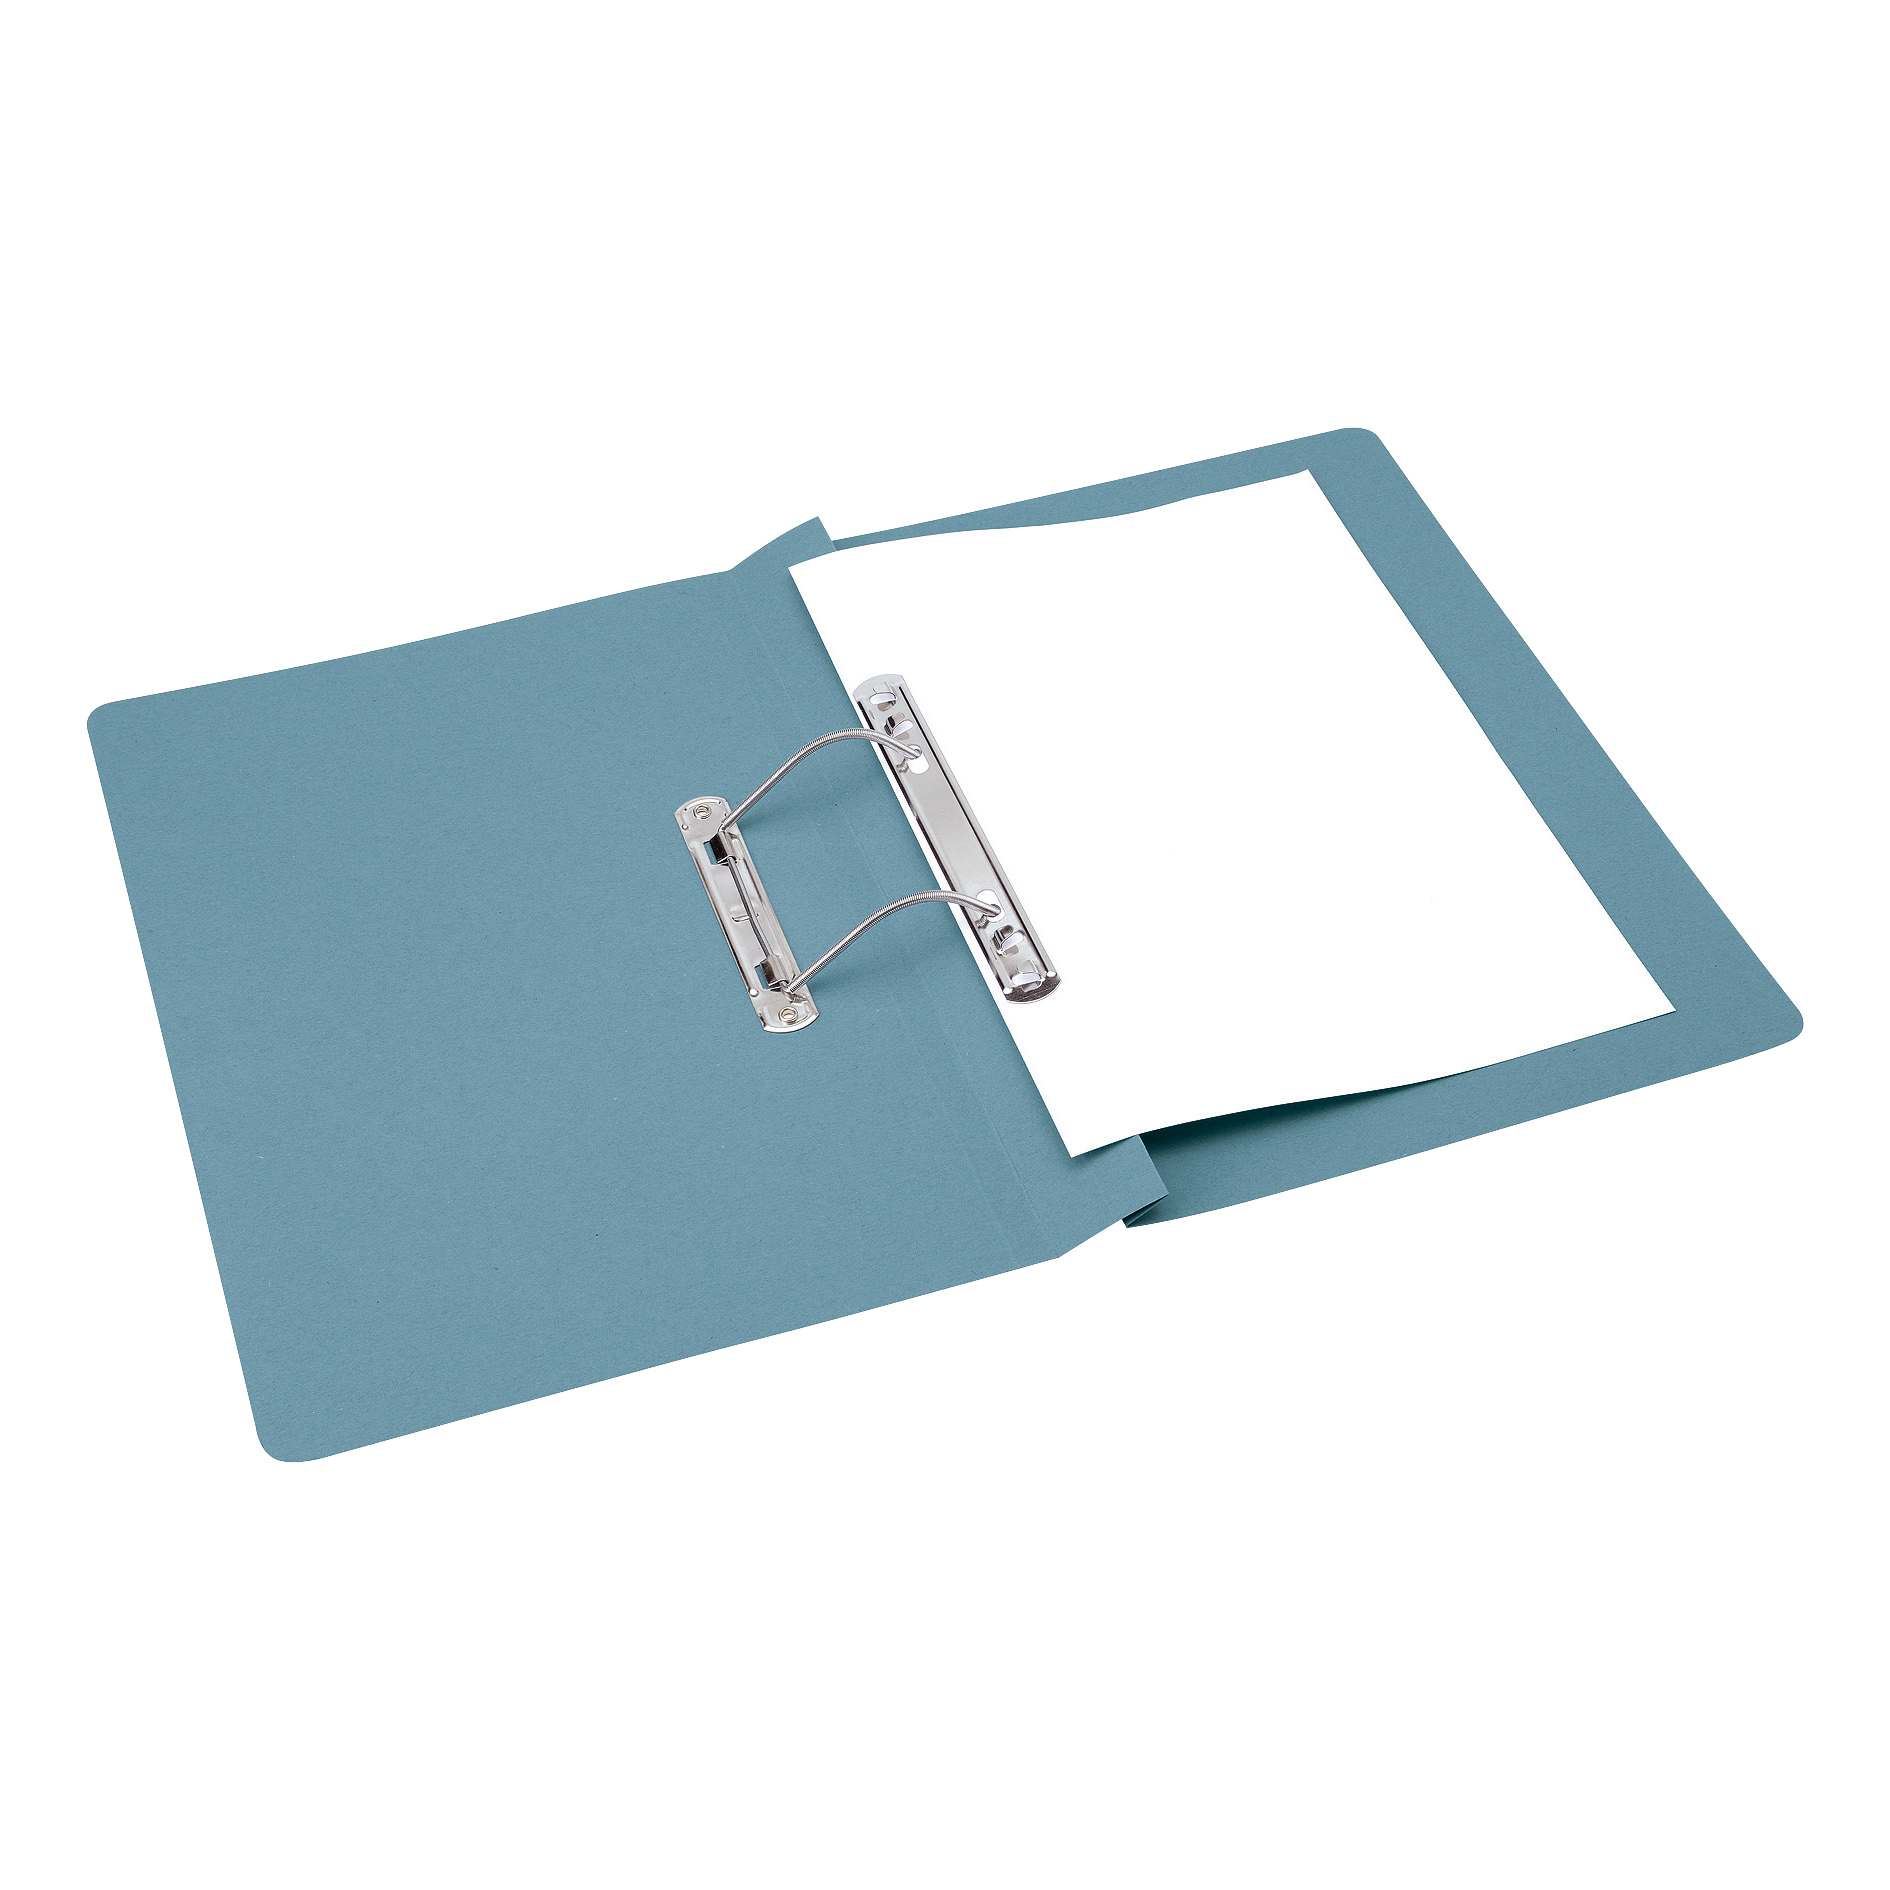 5 Star Office Transfer Spring File 315gsm 38mm Foolscap Blue